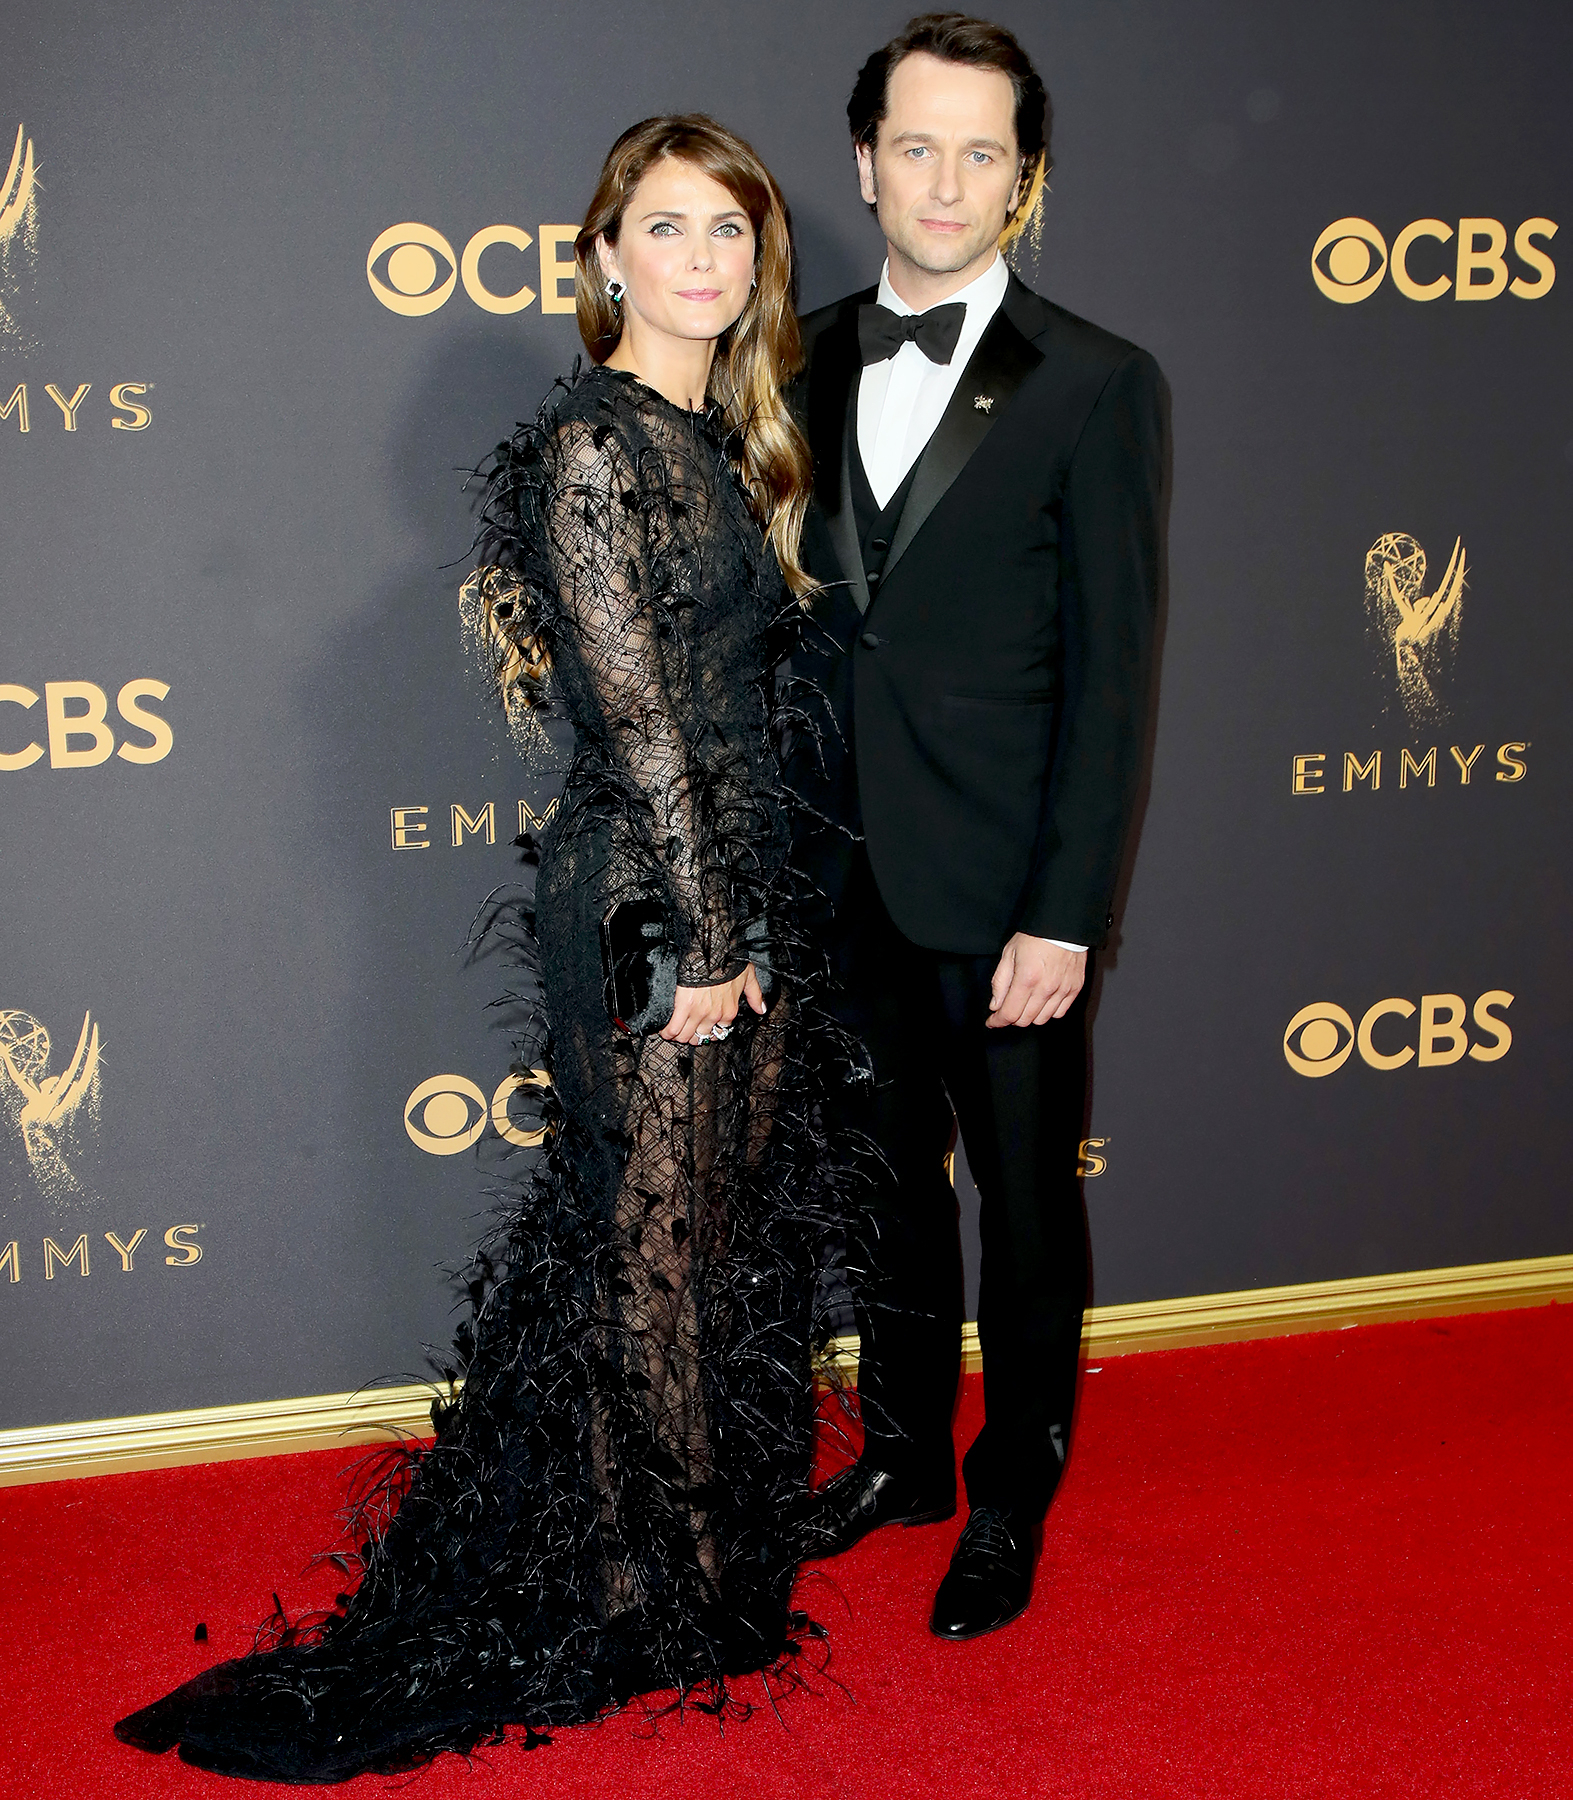 Keri Russell and Matthew Rhys attend the 69th Annual Primetime Emmy Awards - Arrivals at Microsoft Theater on September 17, 2017 in Los Angeles, California.